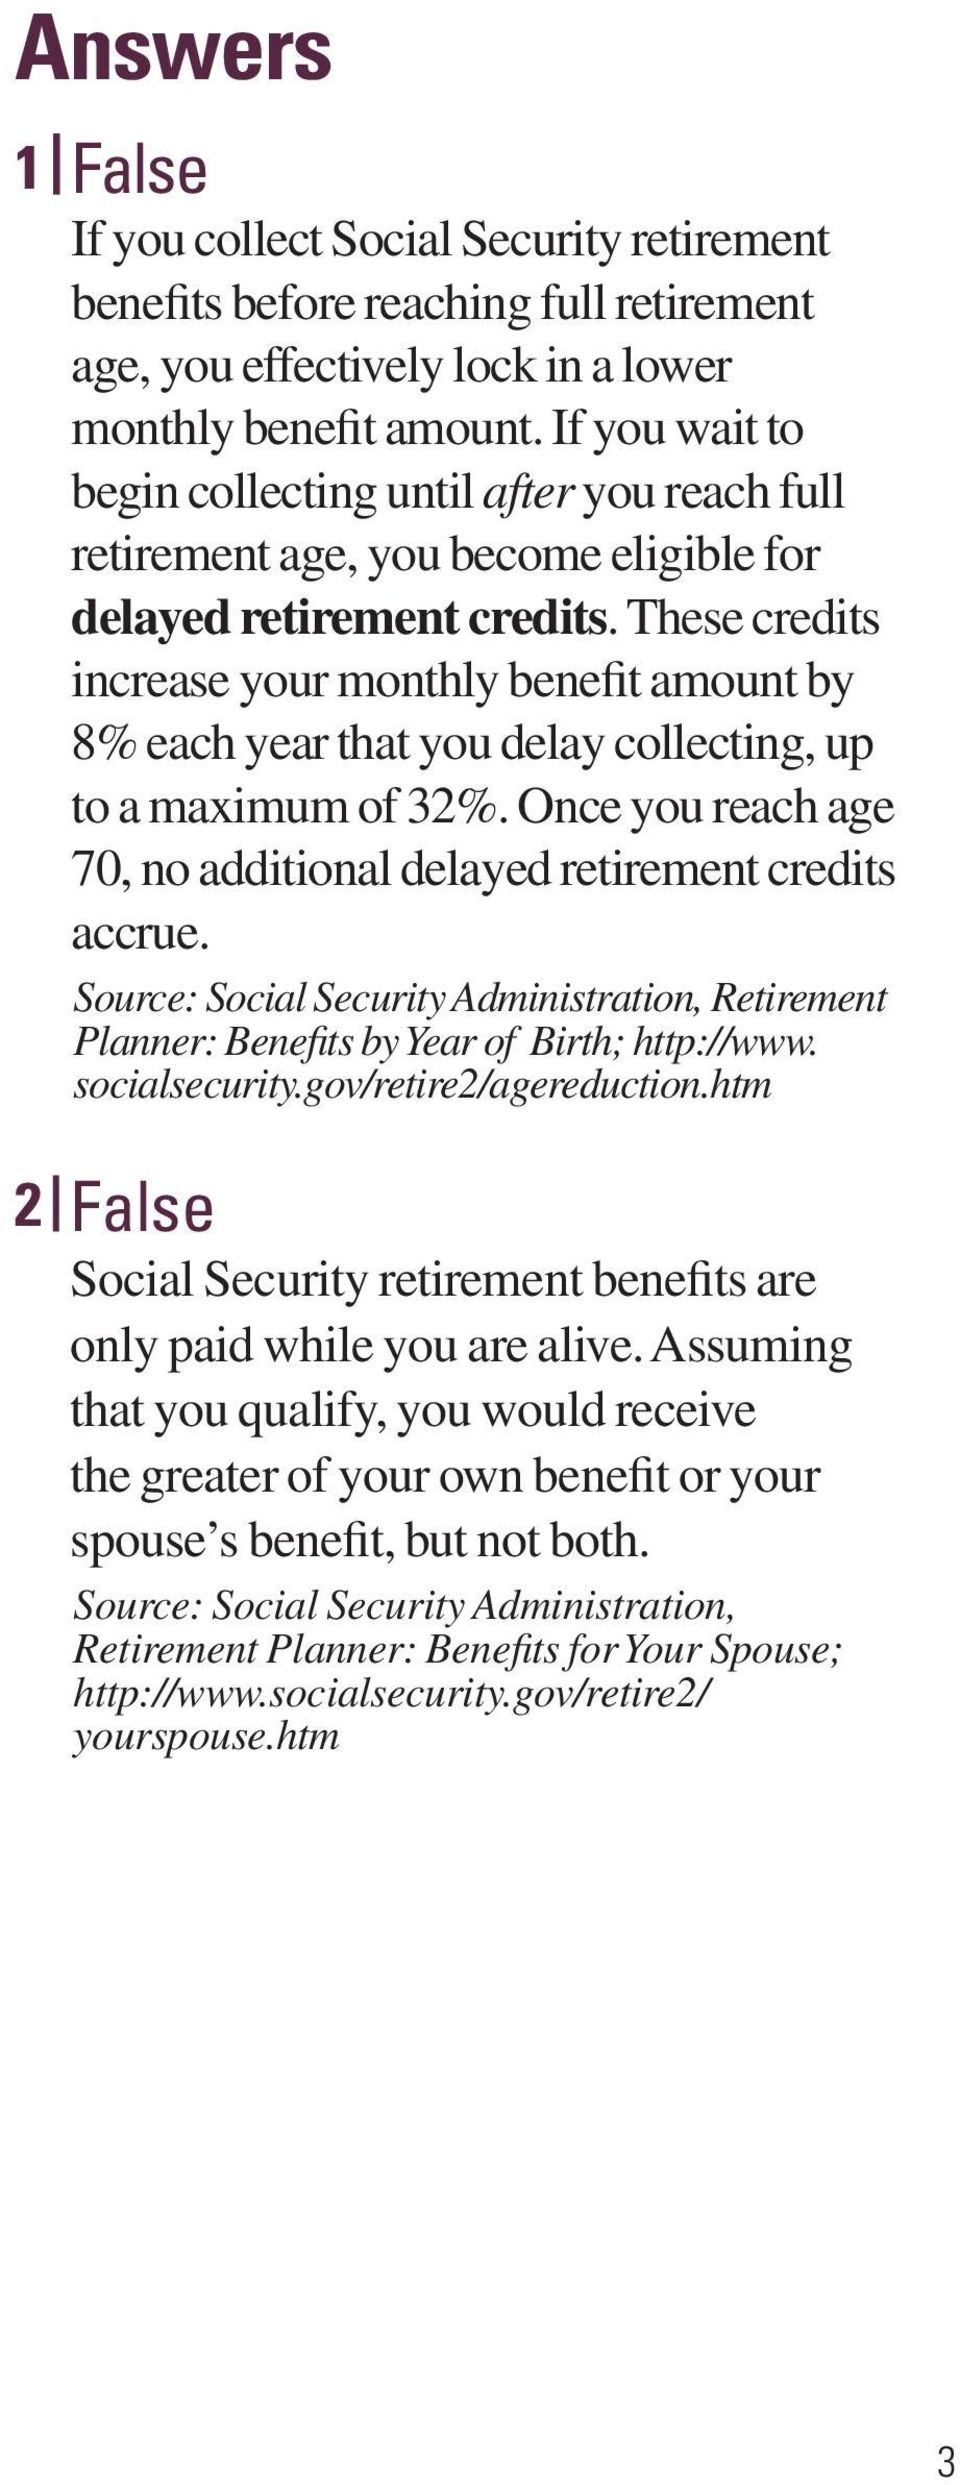 These credits increase your monthly benefit amount by 8% each year that you delay collecting, up to a maximum of 32%. Once you reach age 70, no additional delayed retirement credits accrue.